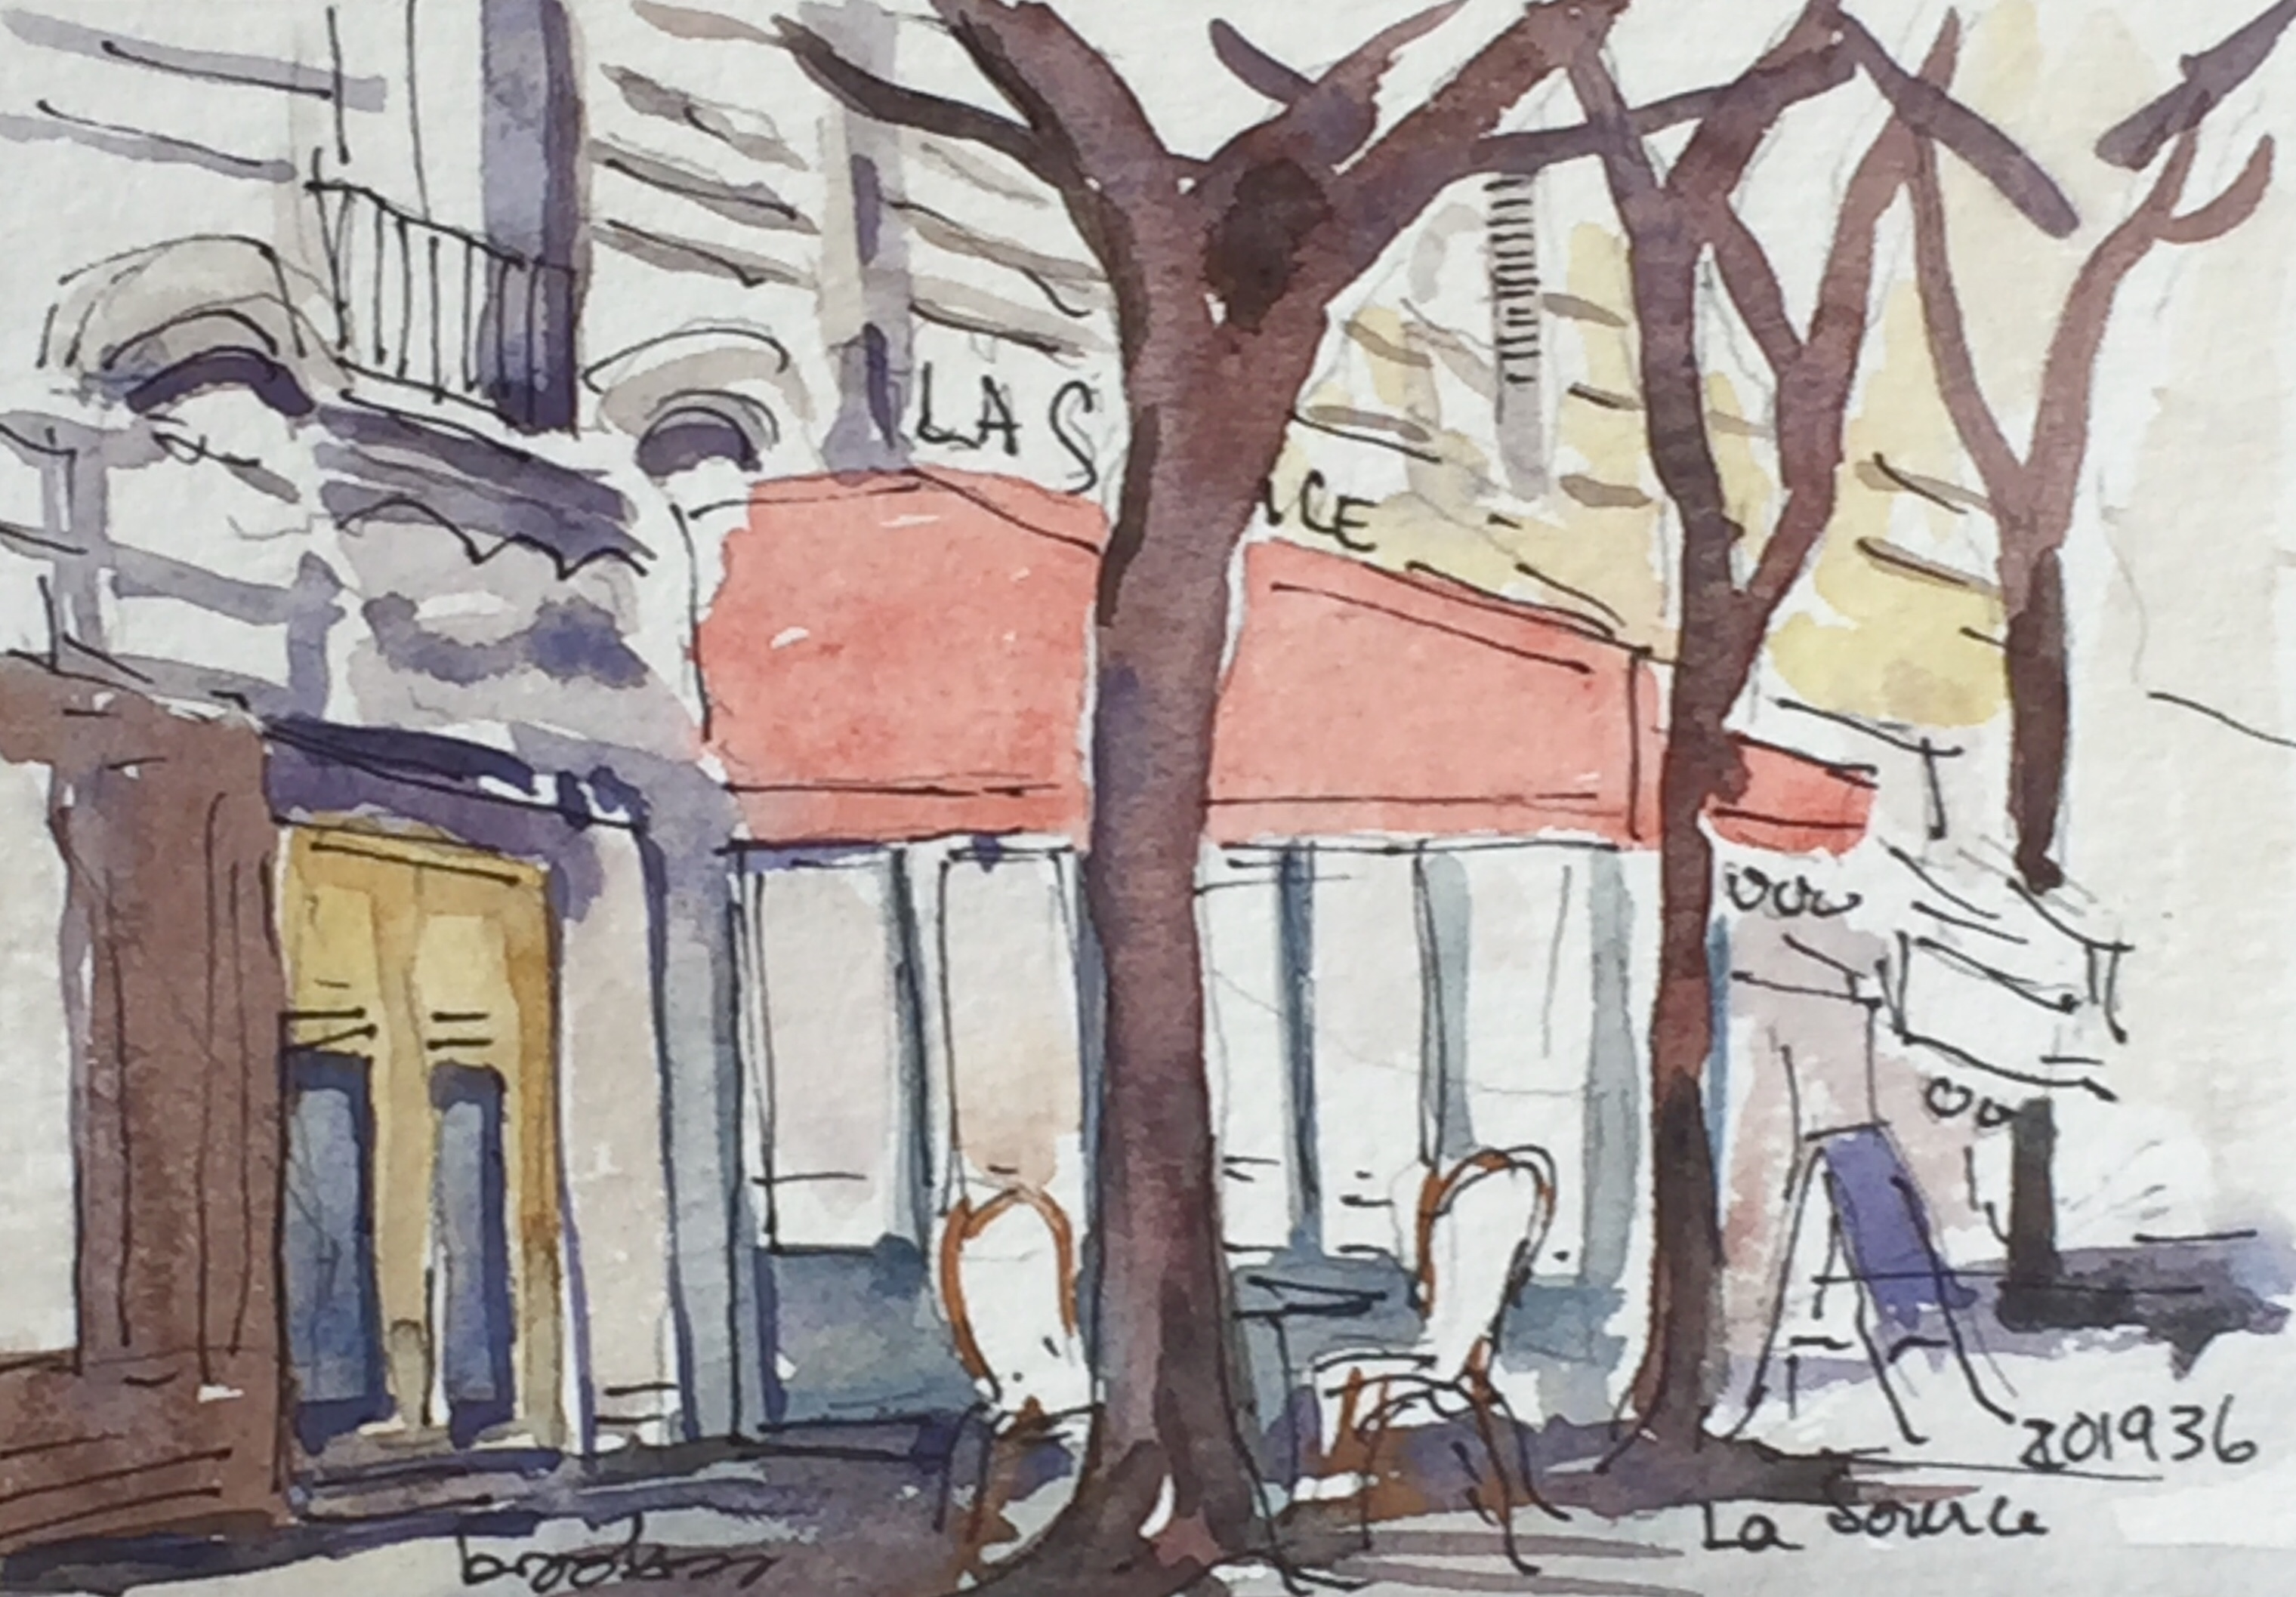 postcard from Paris : a postcard-sized illustration - ink and watercolor on archival paper